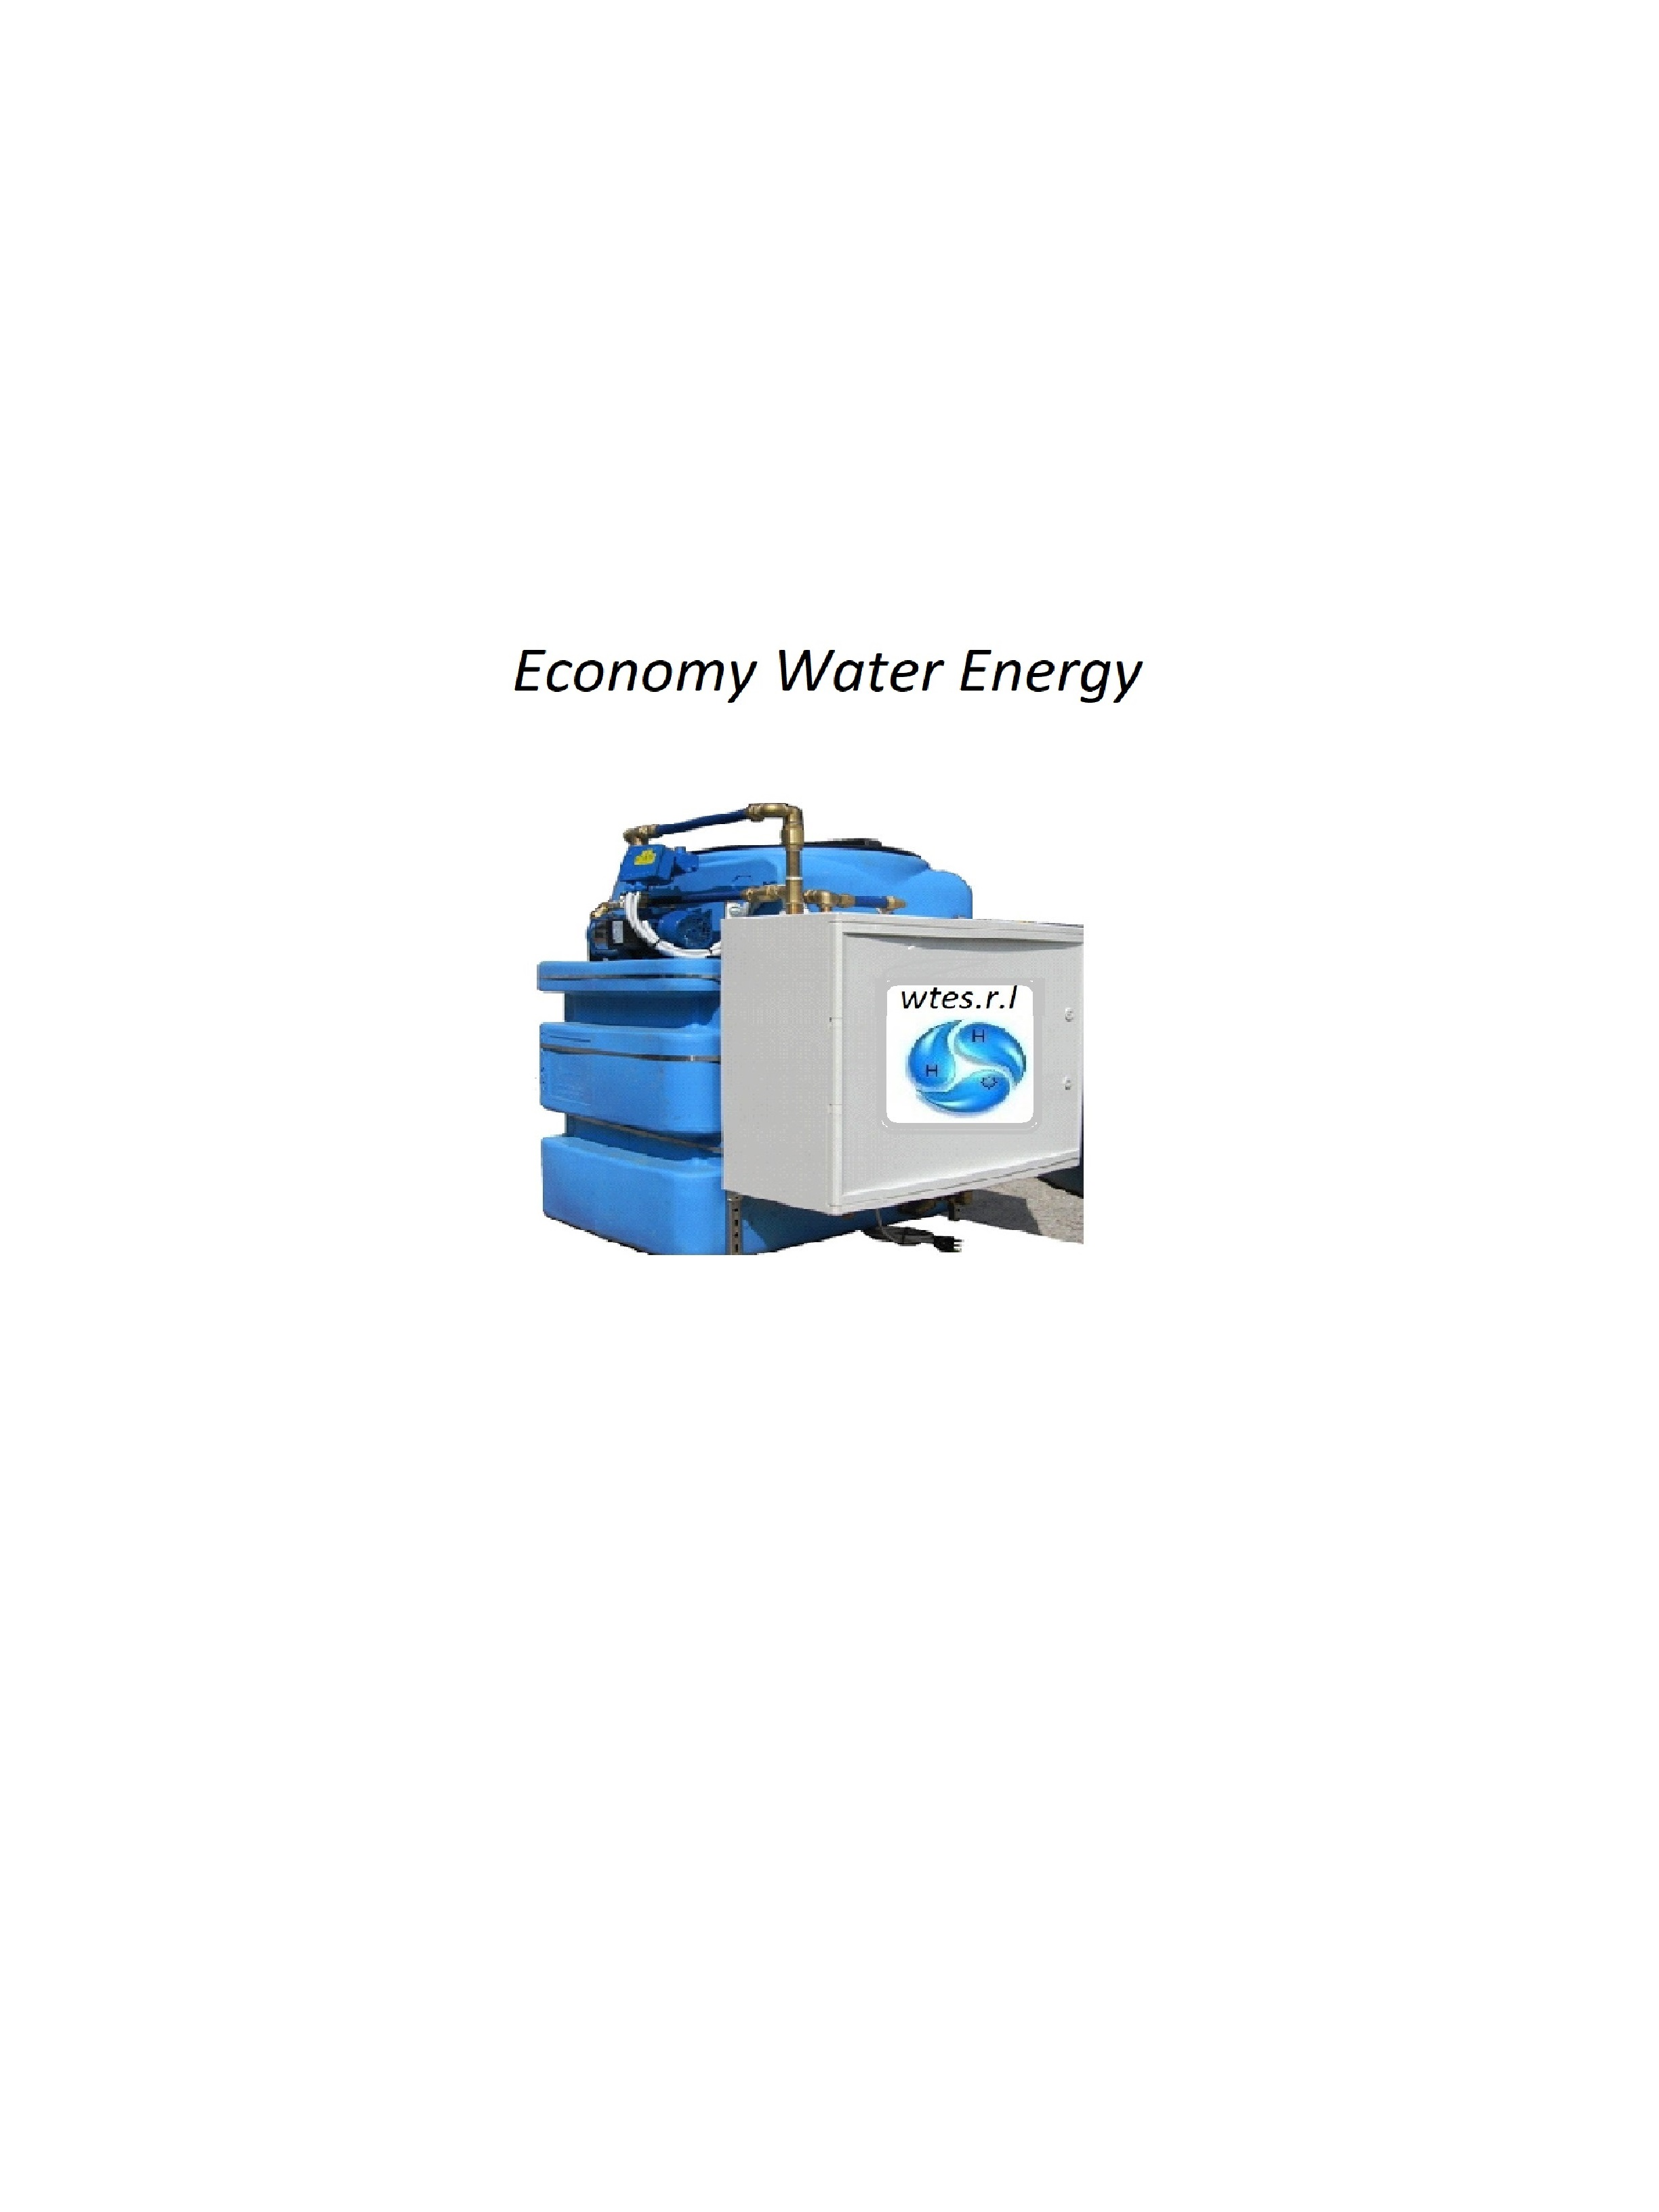 Water Treatmen Ecologic System' Patented Sanitizing Process